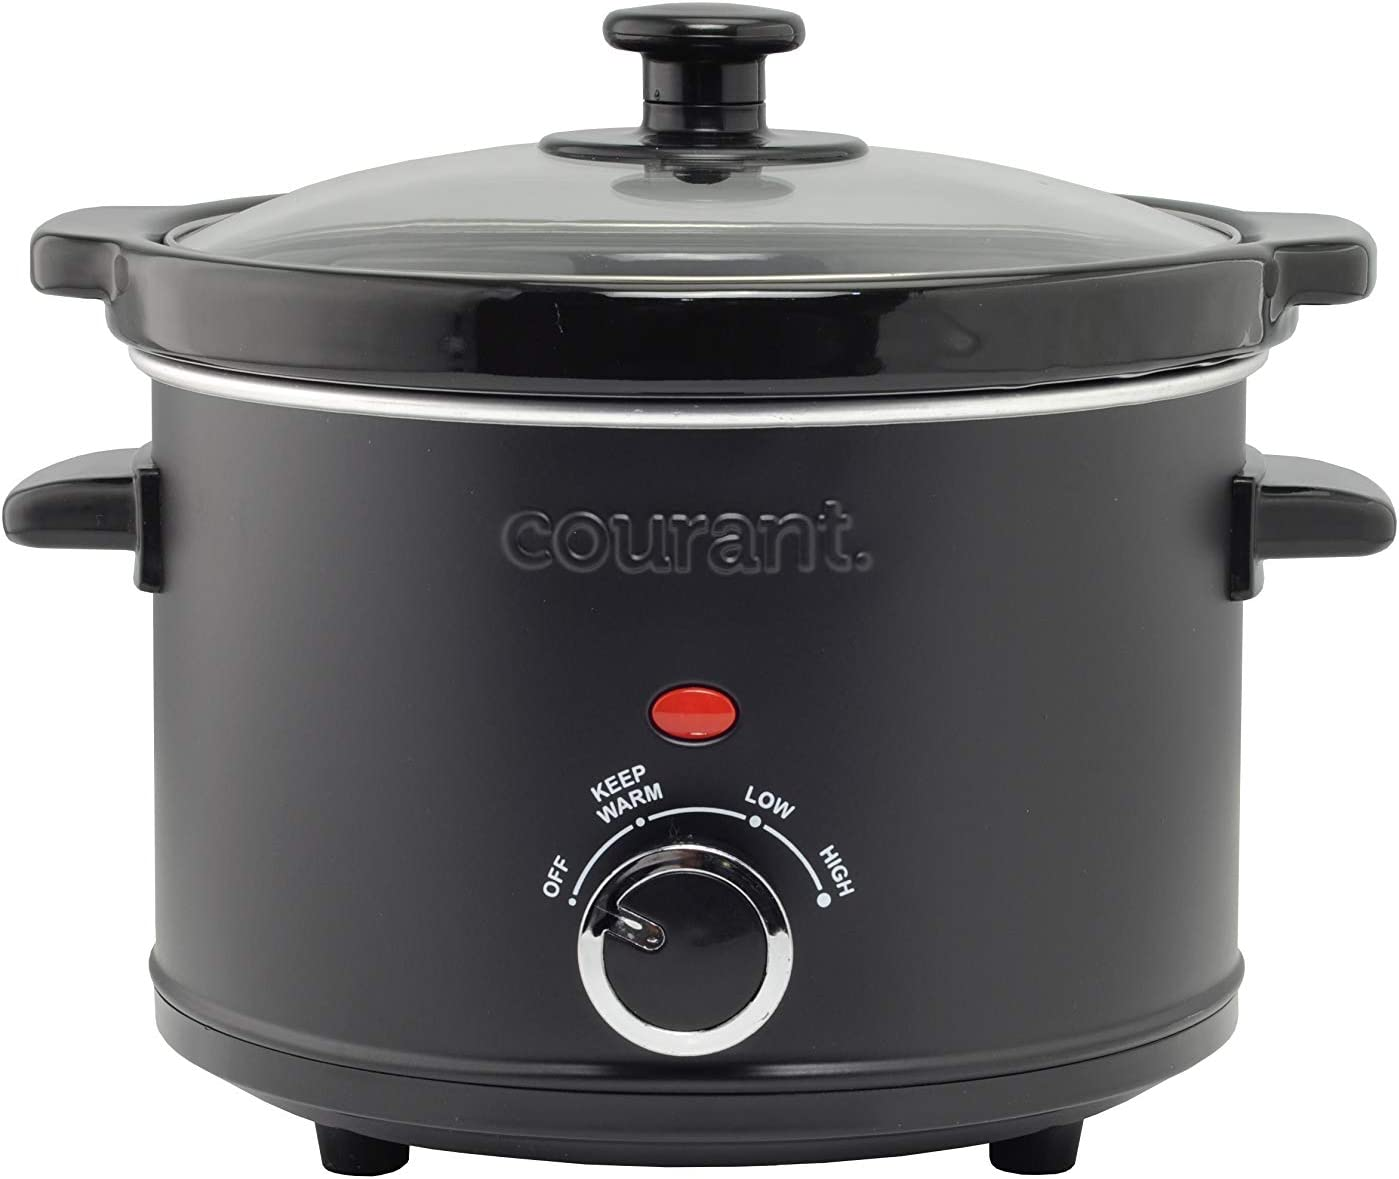 Courant Slow Cooker 2.5 Quart Crock, with Easy Cooking Options, Dishwasher Safe Pot and Glass Lid, Matte Black